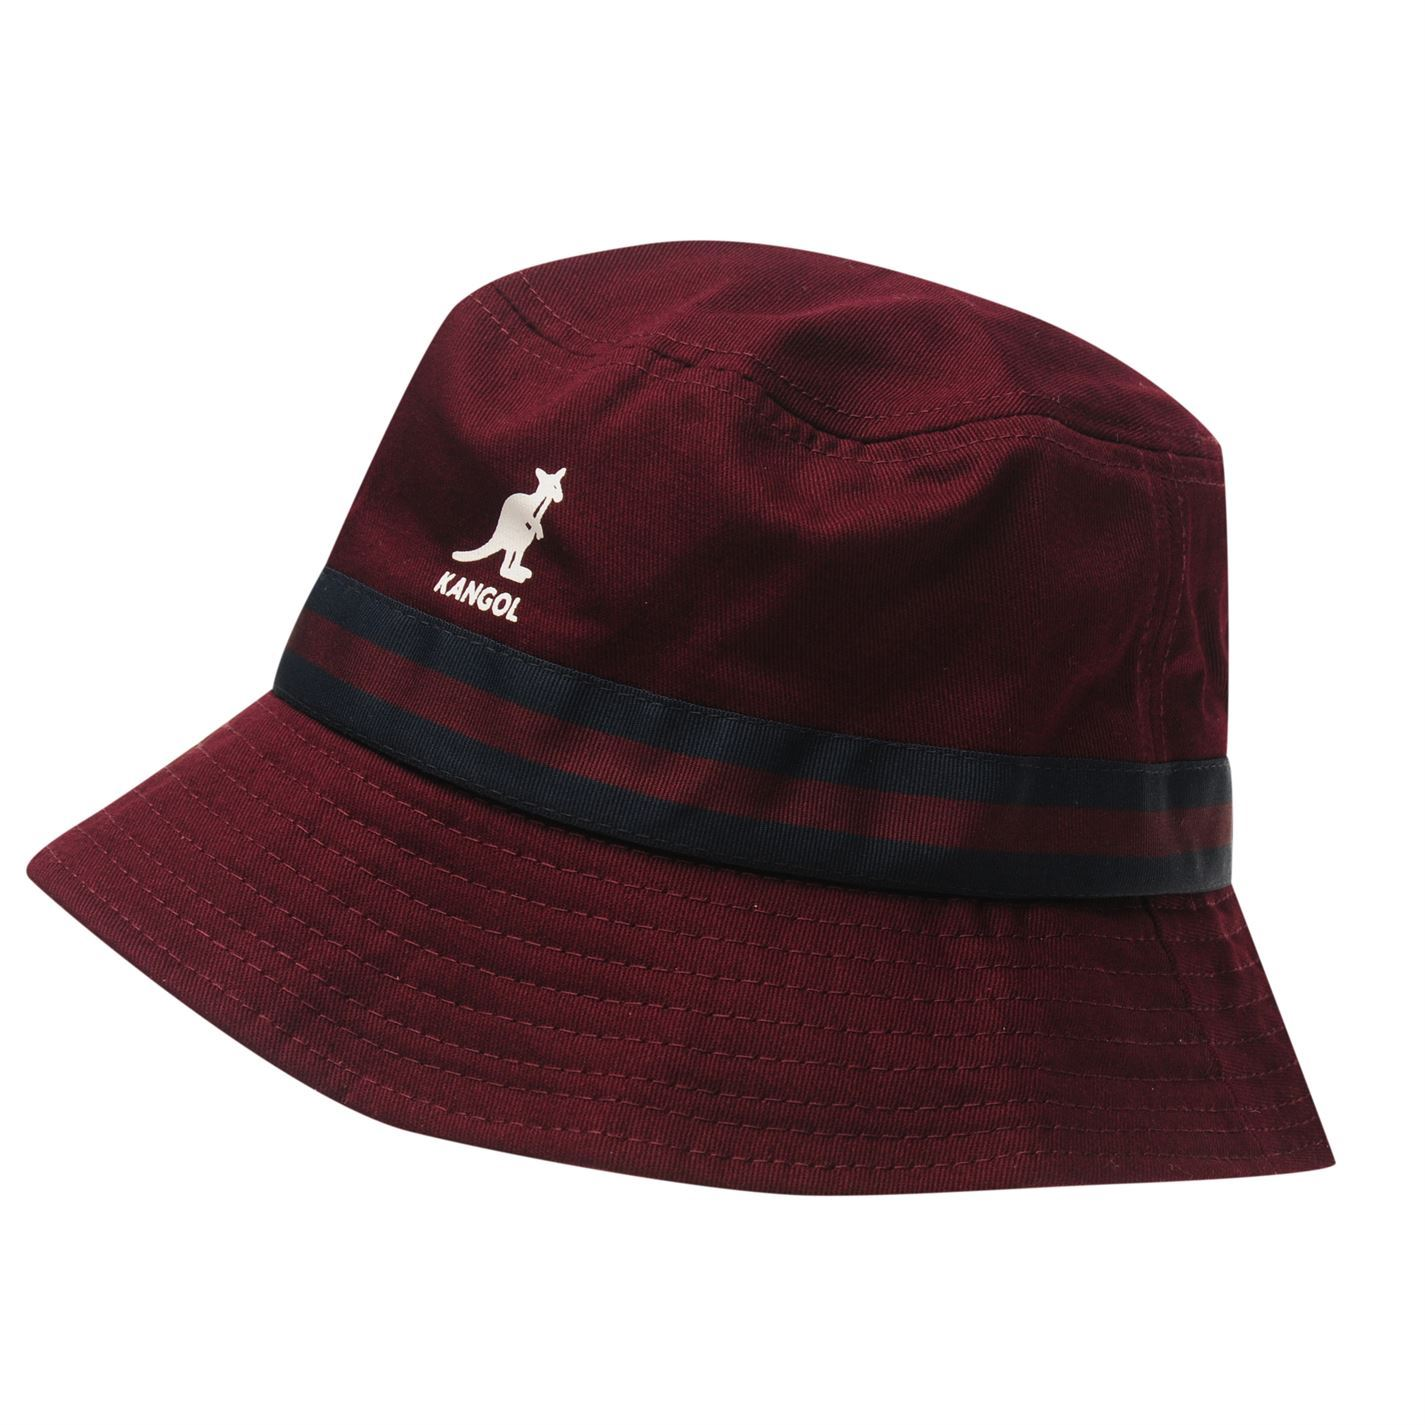 Kangol Mens Stripe Bucket Hat Cotton | eBay